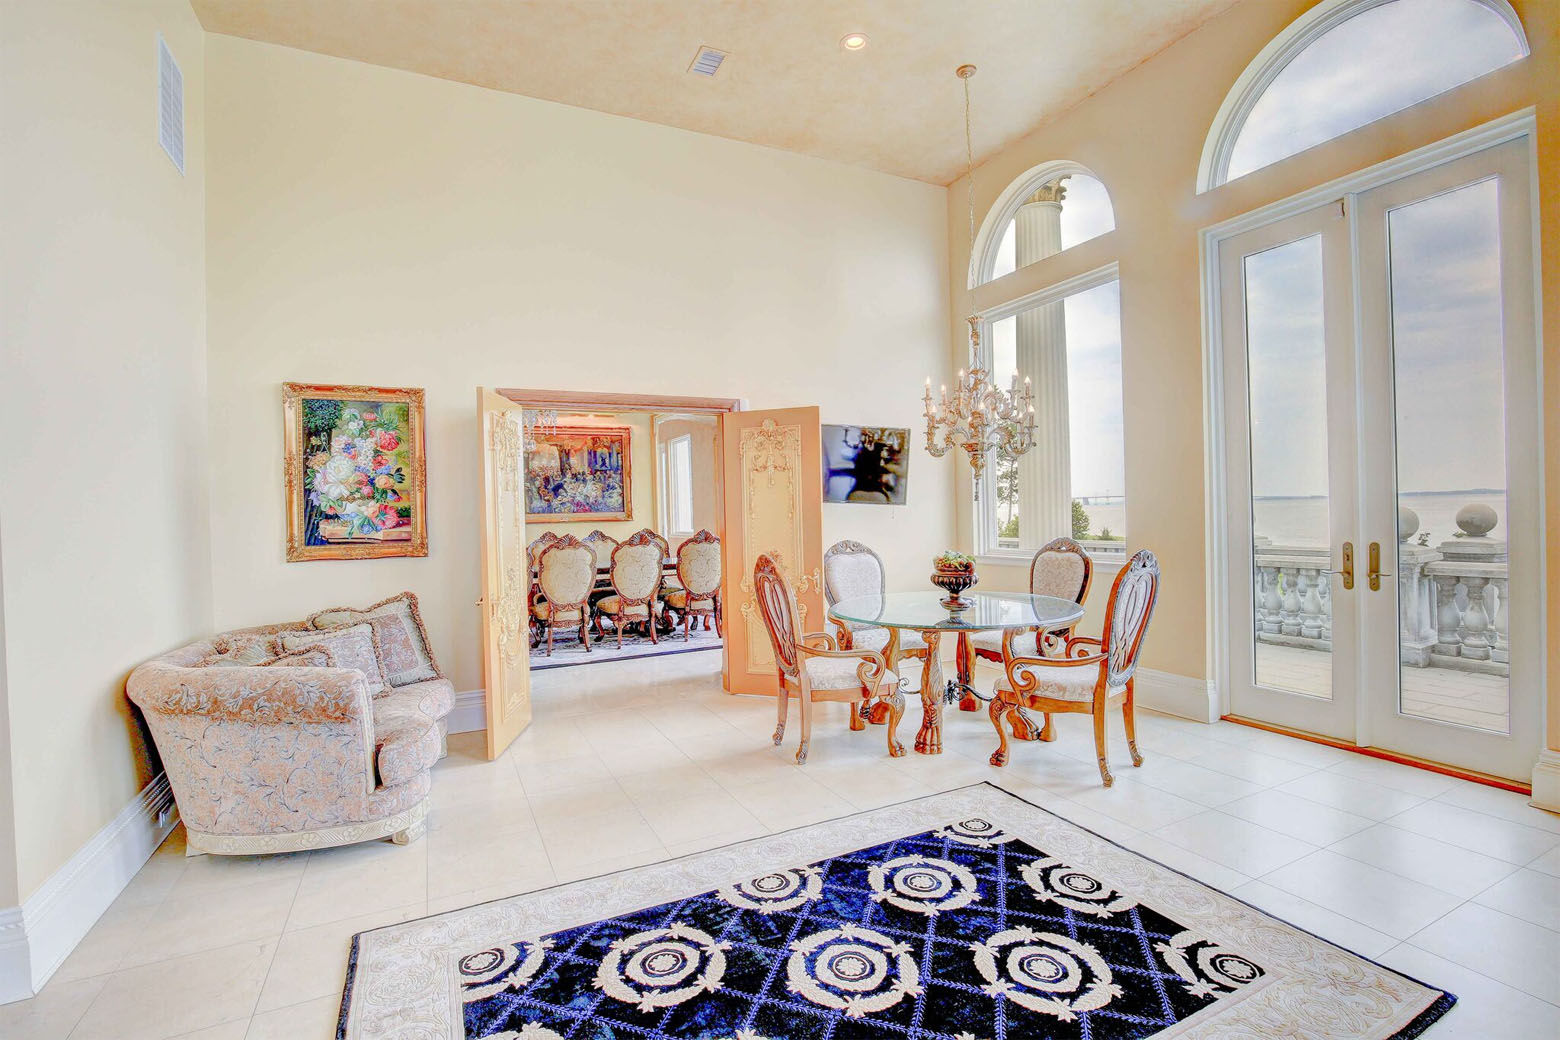 The Love Point estate in Stevensville, Maryland, just hit the market and features four bedrooms, 5 full and 2 half bathrooms, 9,474 square feet of space. (Courtesy Phil and Victoria Gerdes)